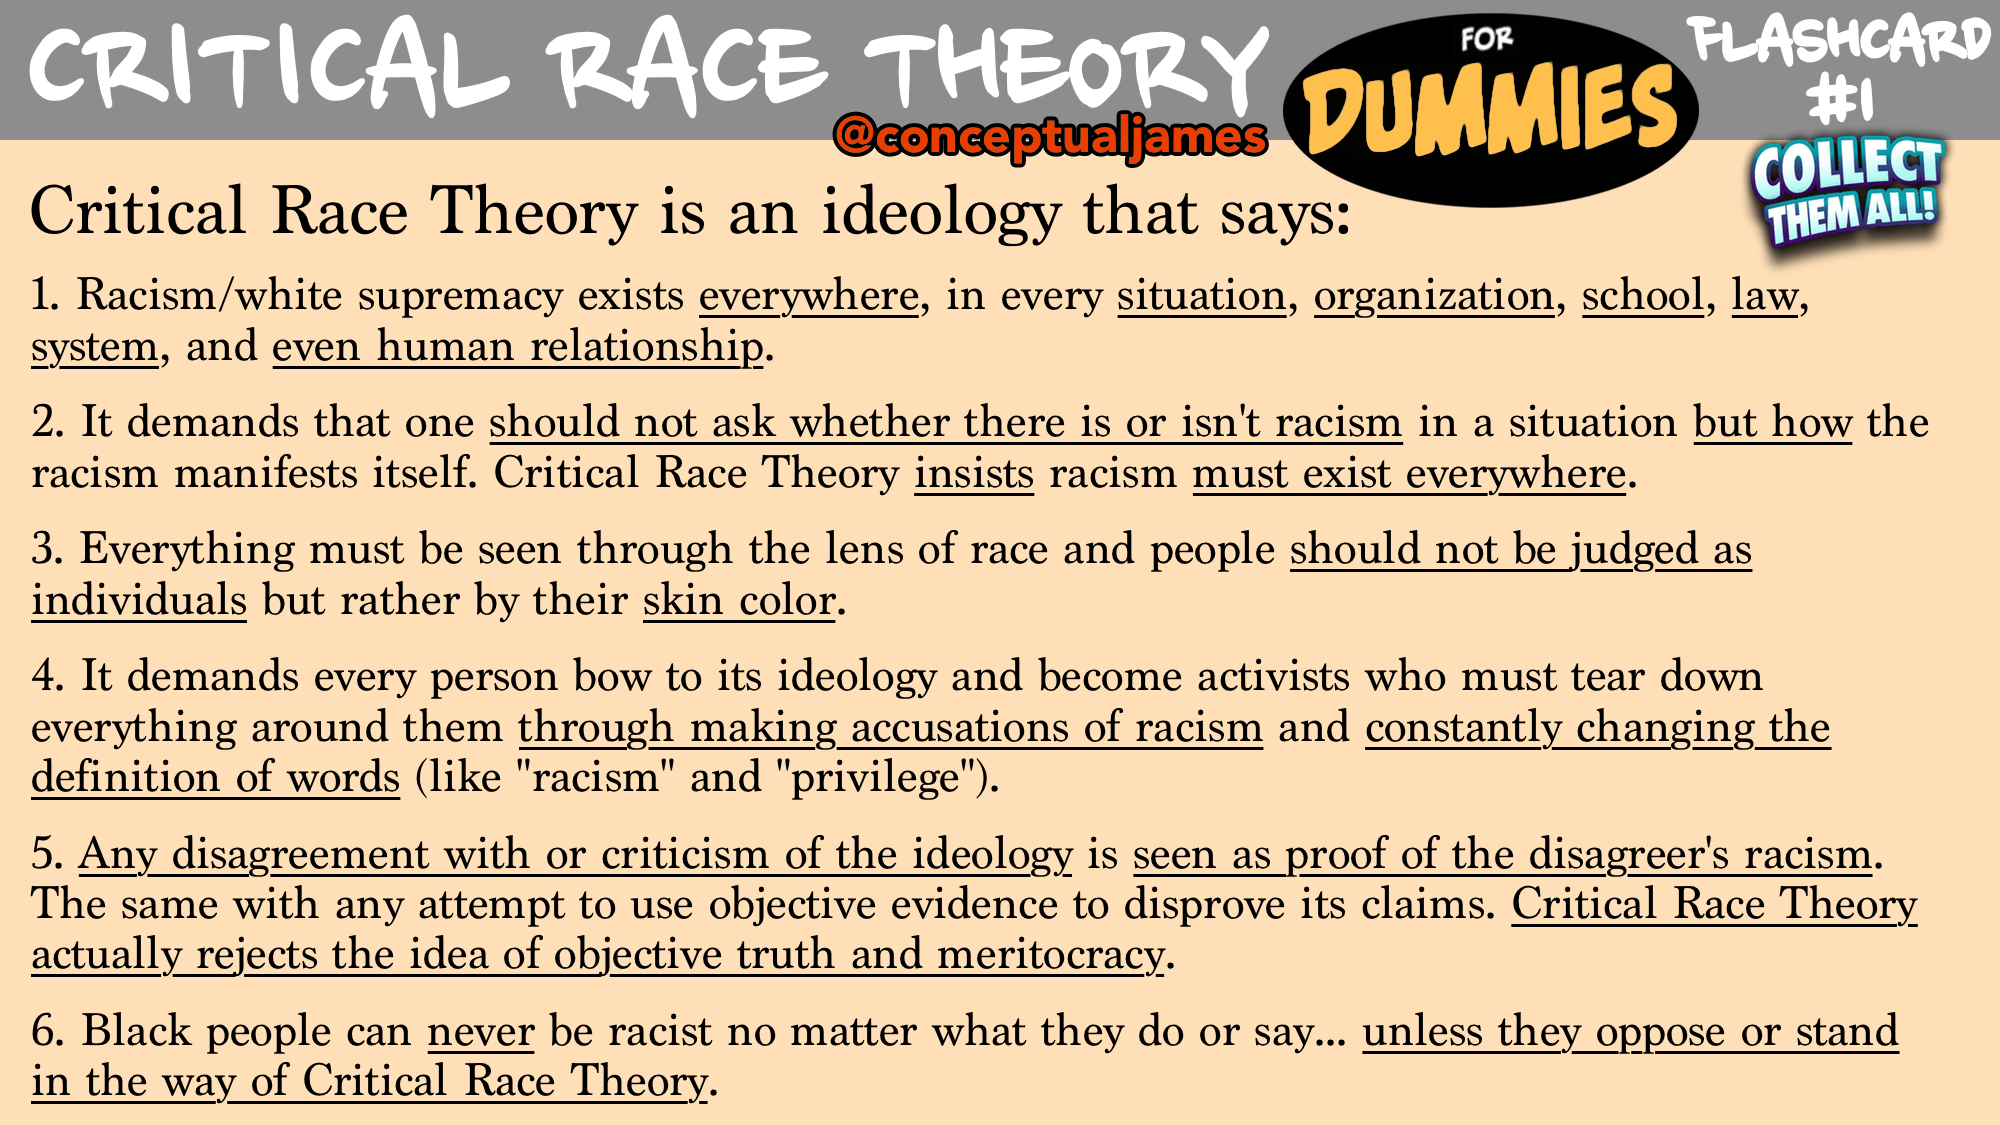 Critical Race Theory Flashcards No. 1 (https://twitter.com/ConceptualJames/status/1311397970823258114)